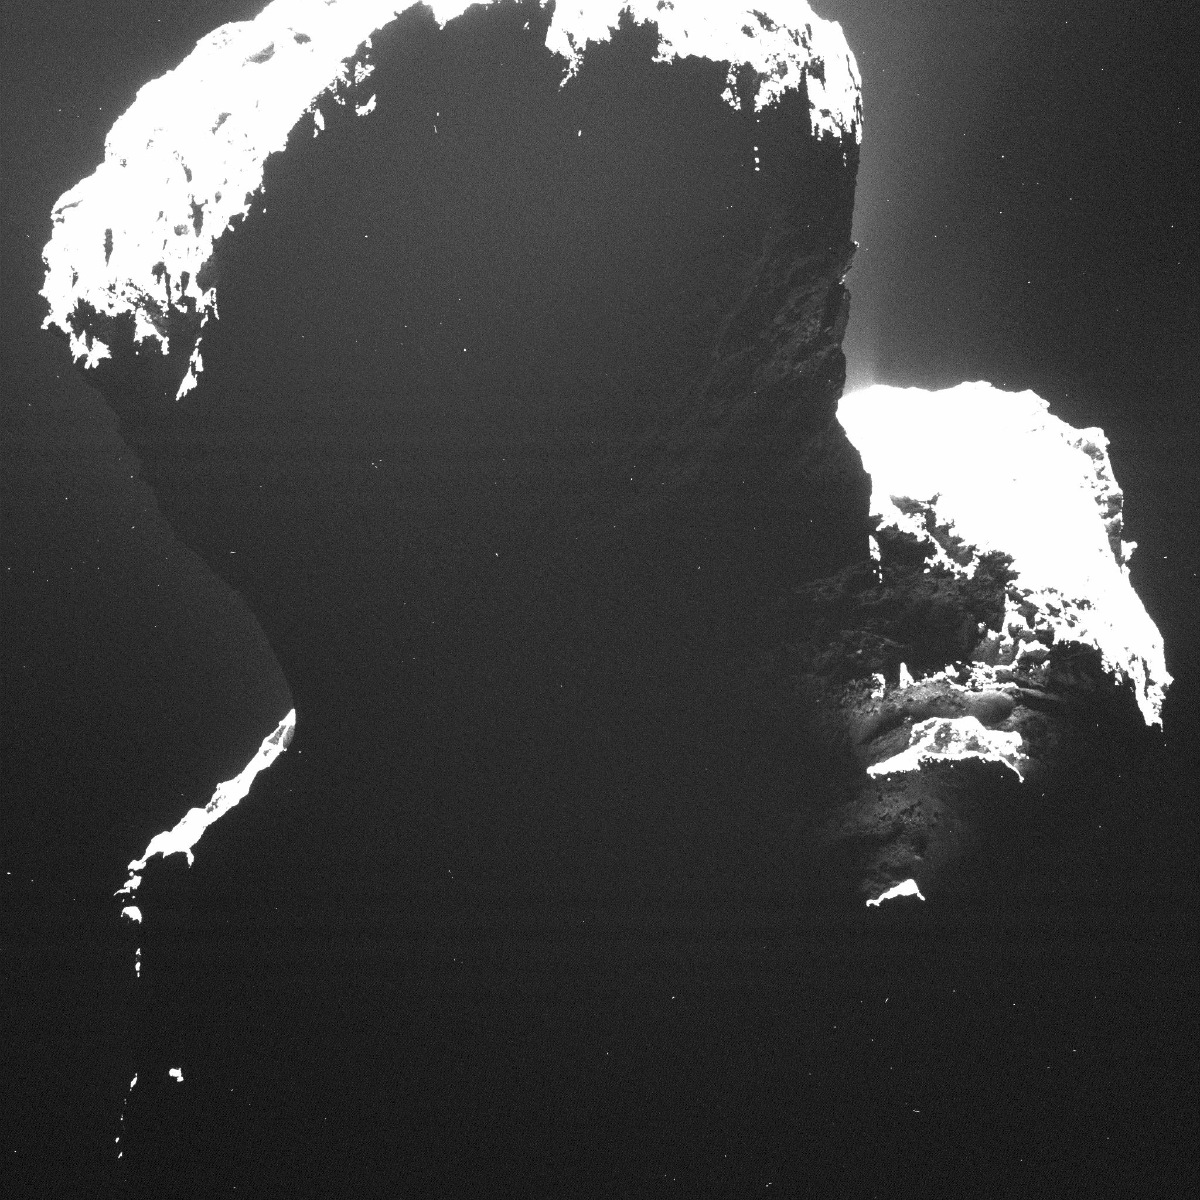 Rosetta Spacecraft Sees the 'Dark Side' of a Comet (Photos)